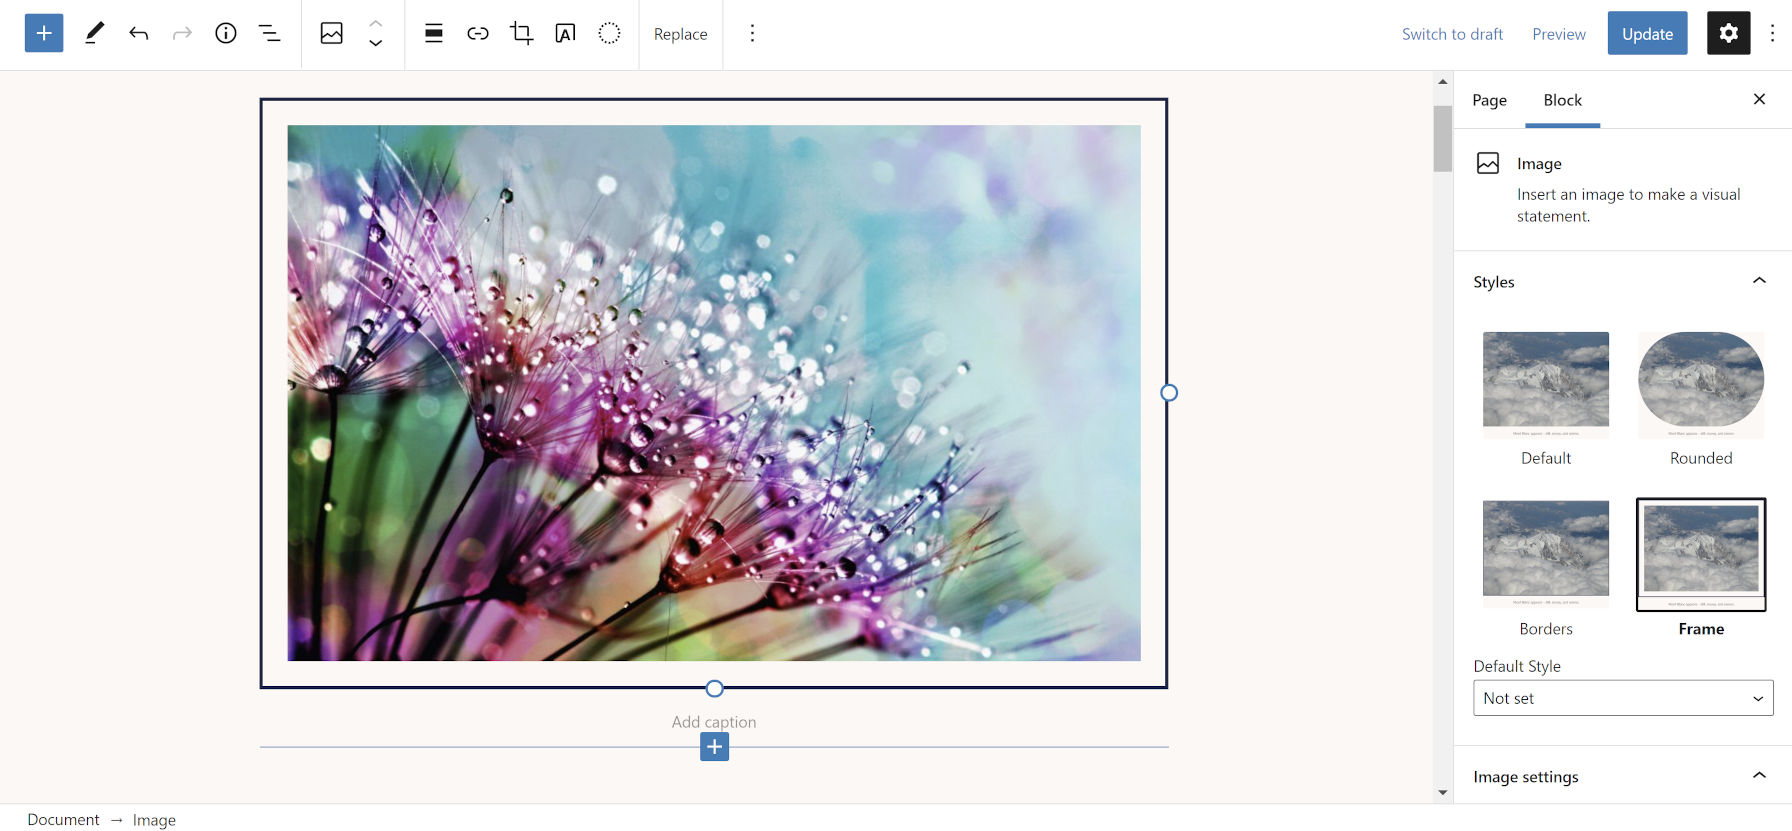 Framed image with black border in the WordPress block editor.